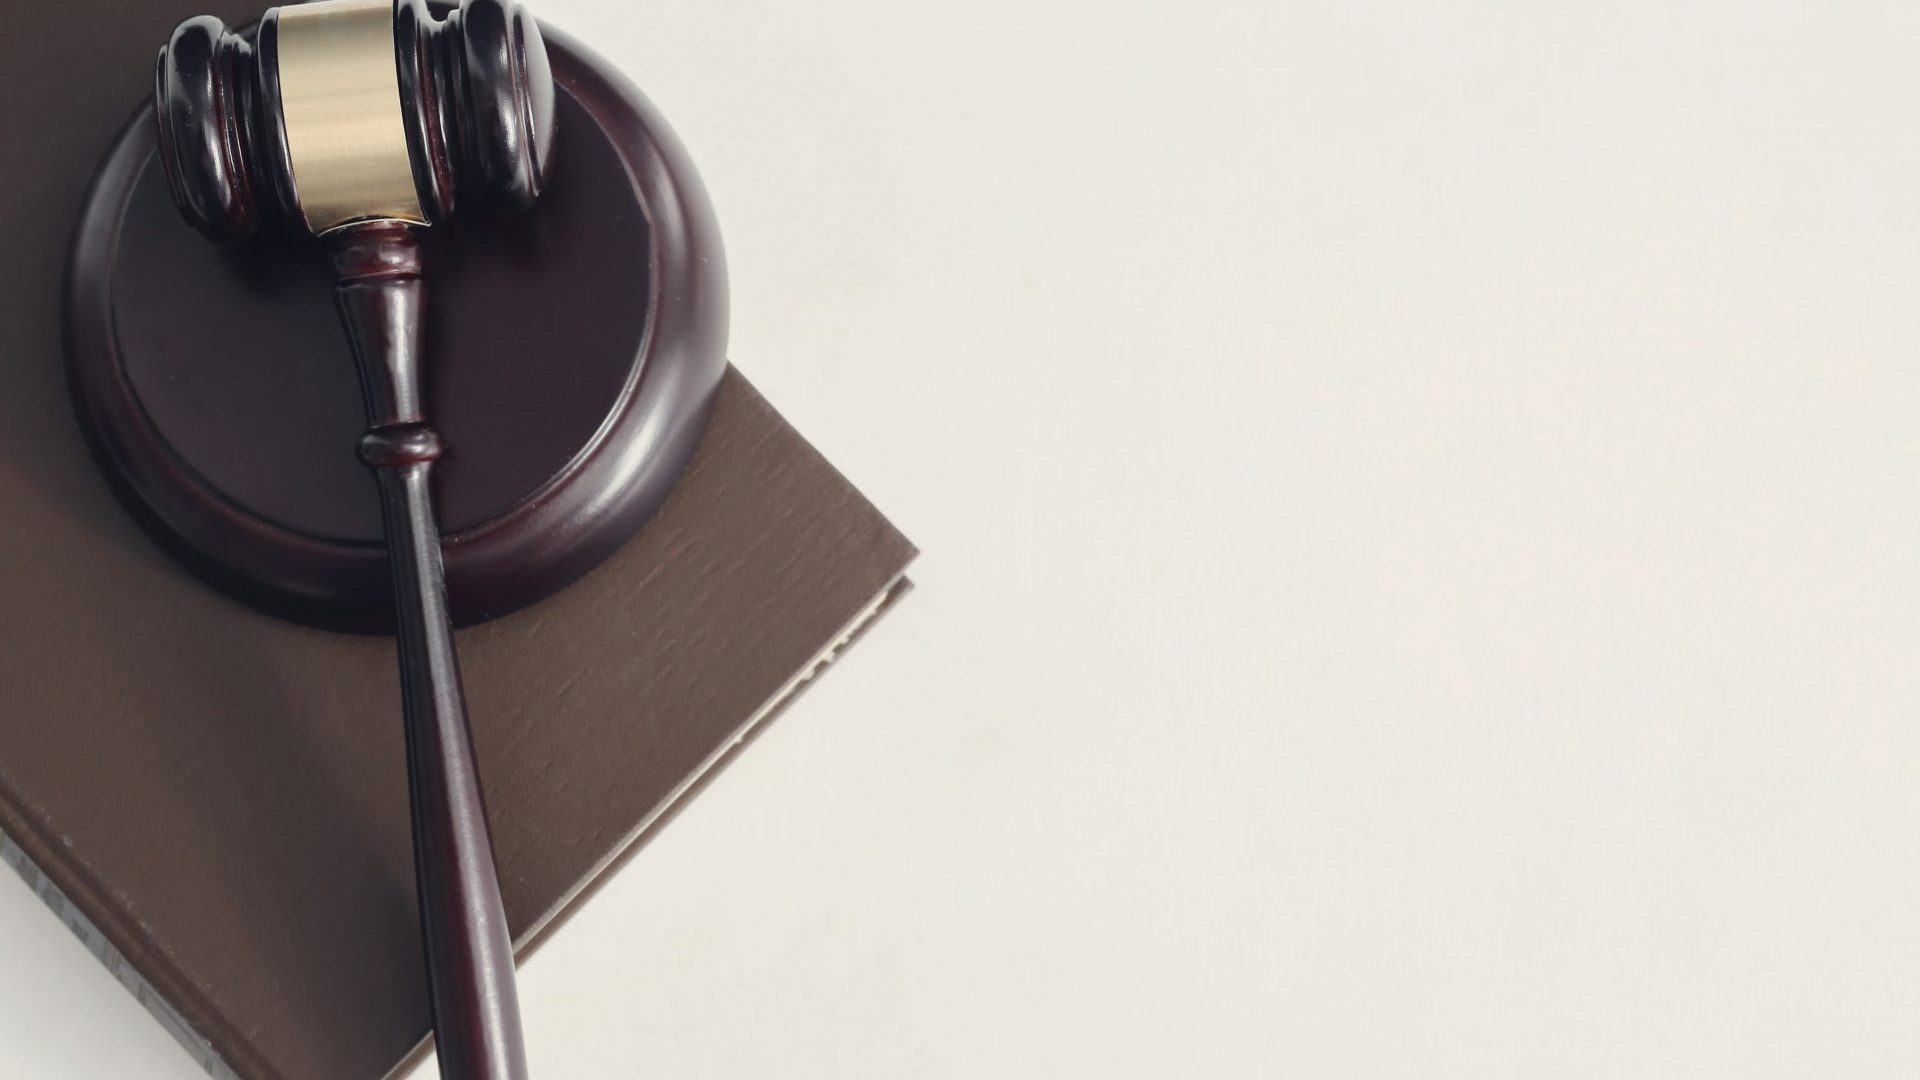 court-hammer-books-judgment-law-concept-min